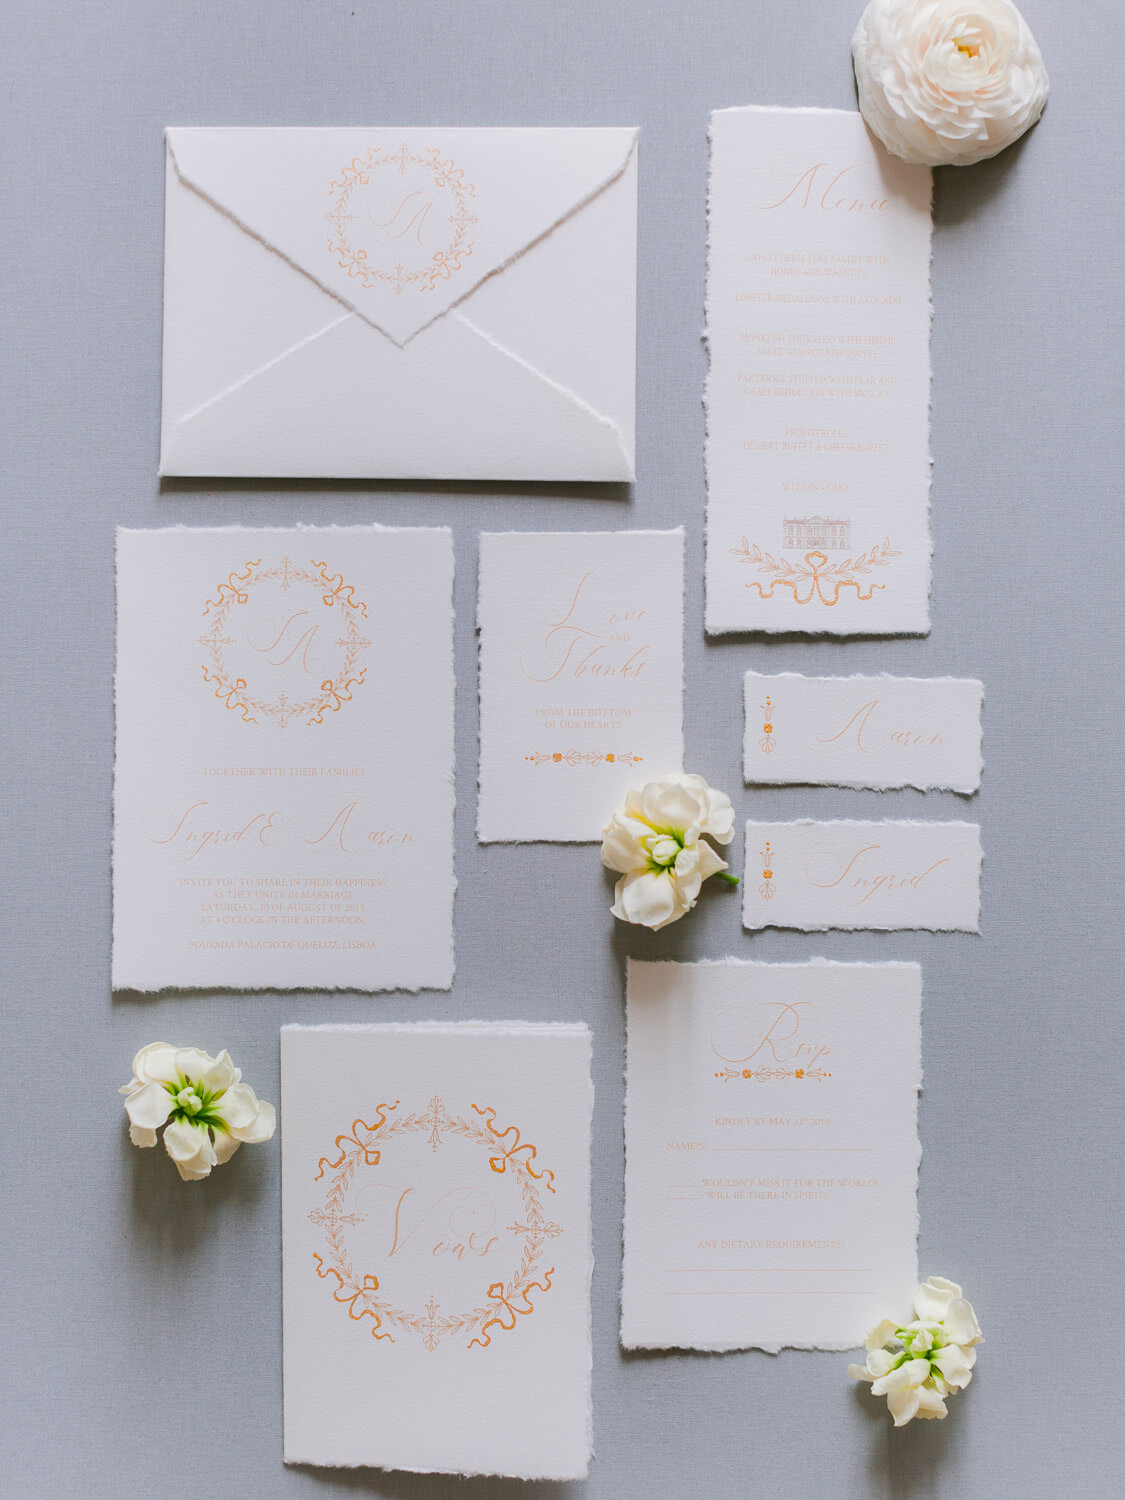 calligraphy wedding stationery styled and photographed by Portugal Wedding Photographer